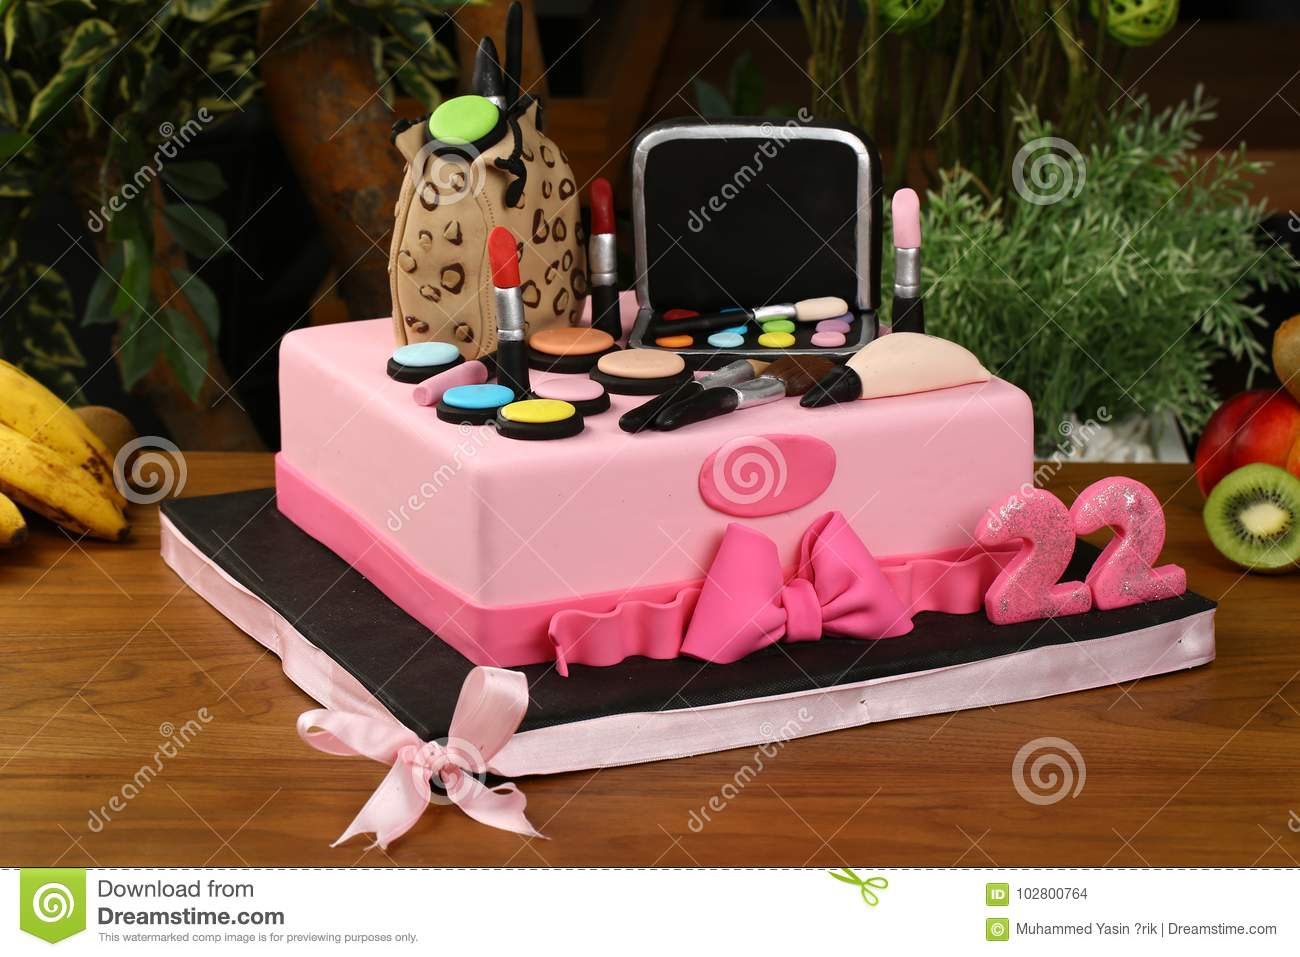 Kids Birthday Party Cake Cosmetics And Make Up Material Consept